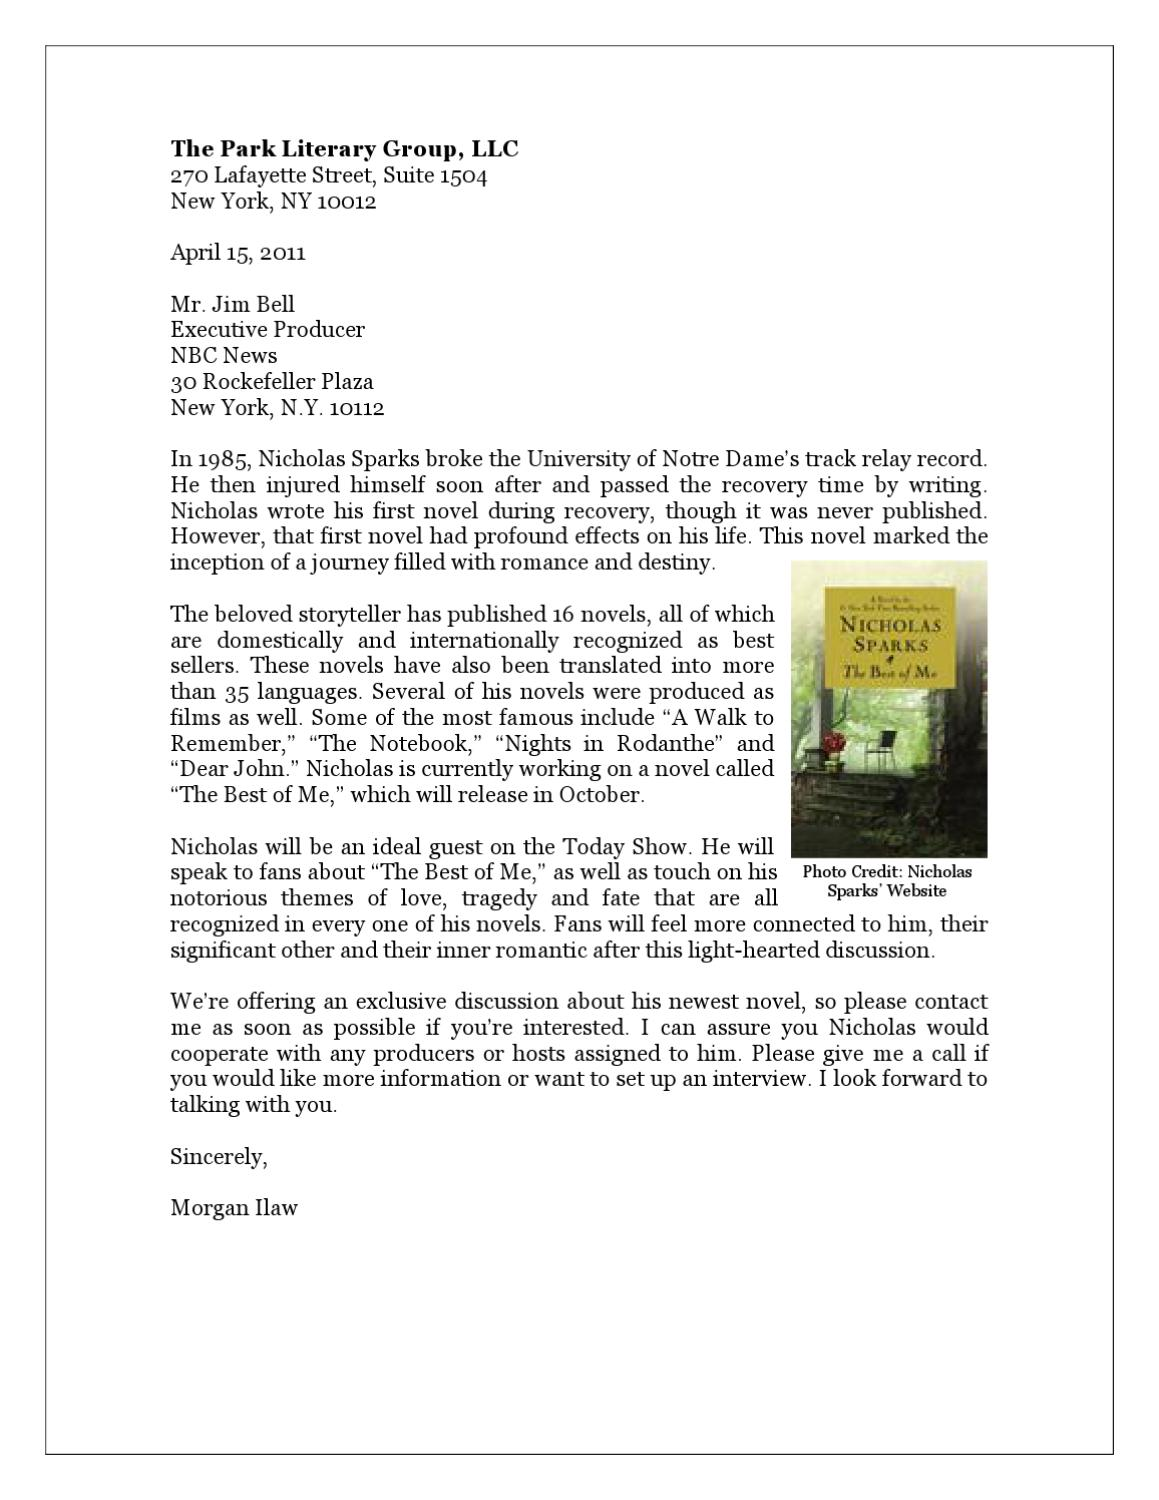 Nicholas Sparks' Pitch Letter by Morgan Ilaw - issuu